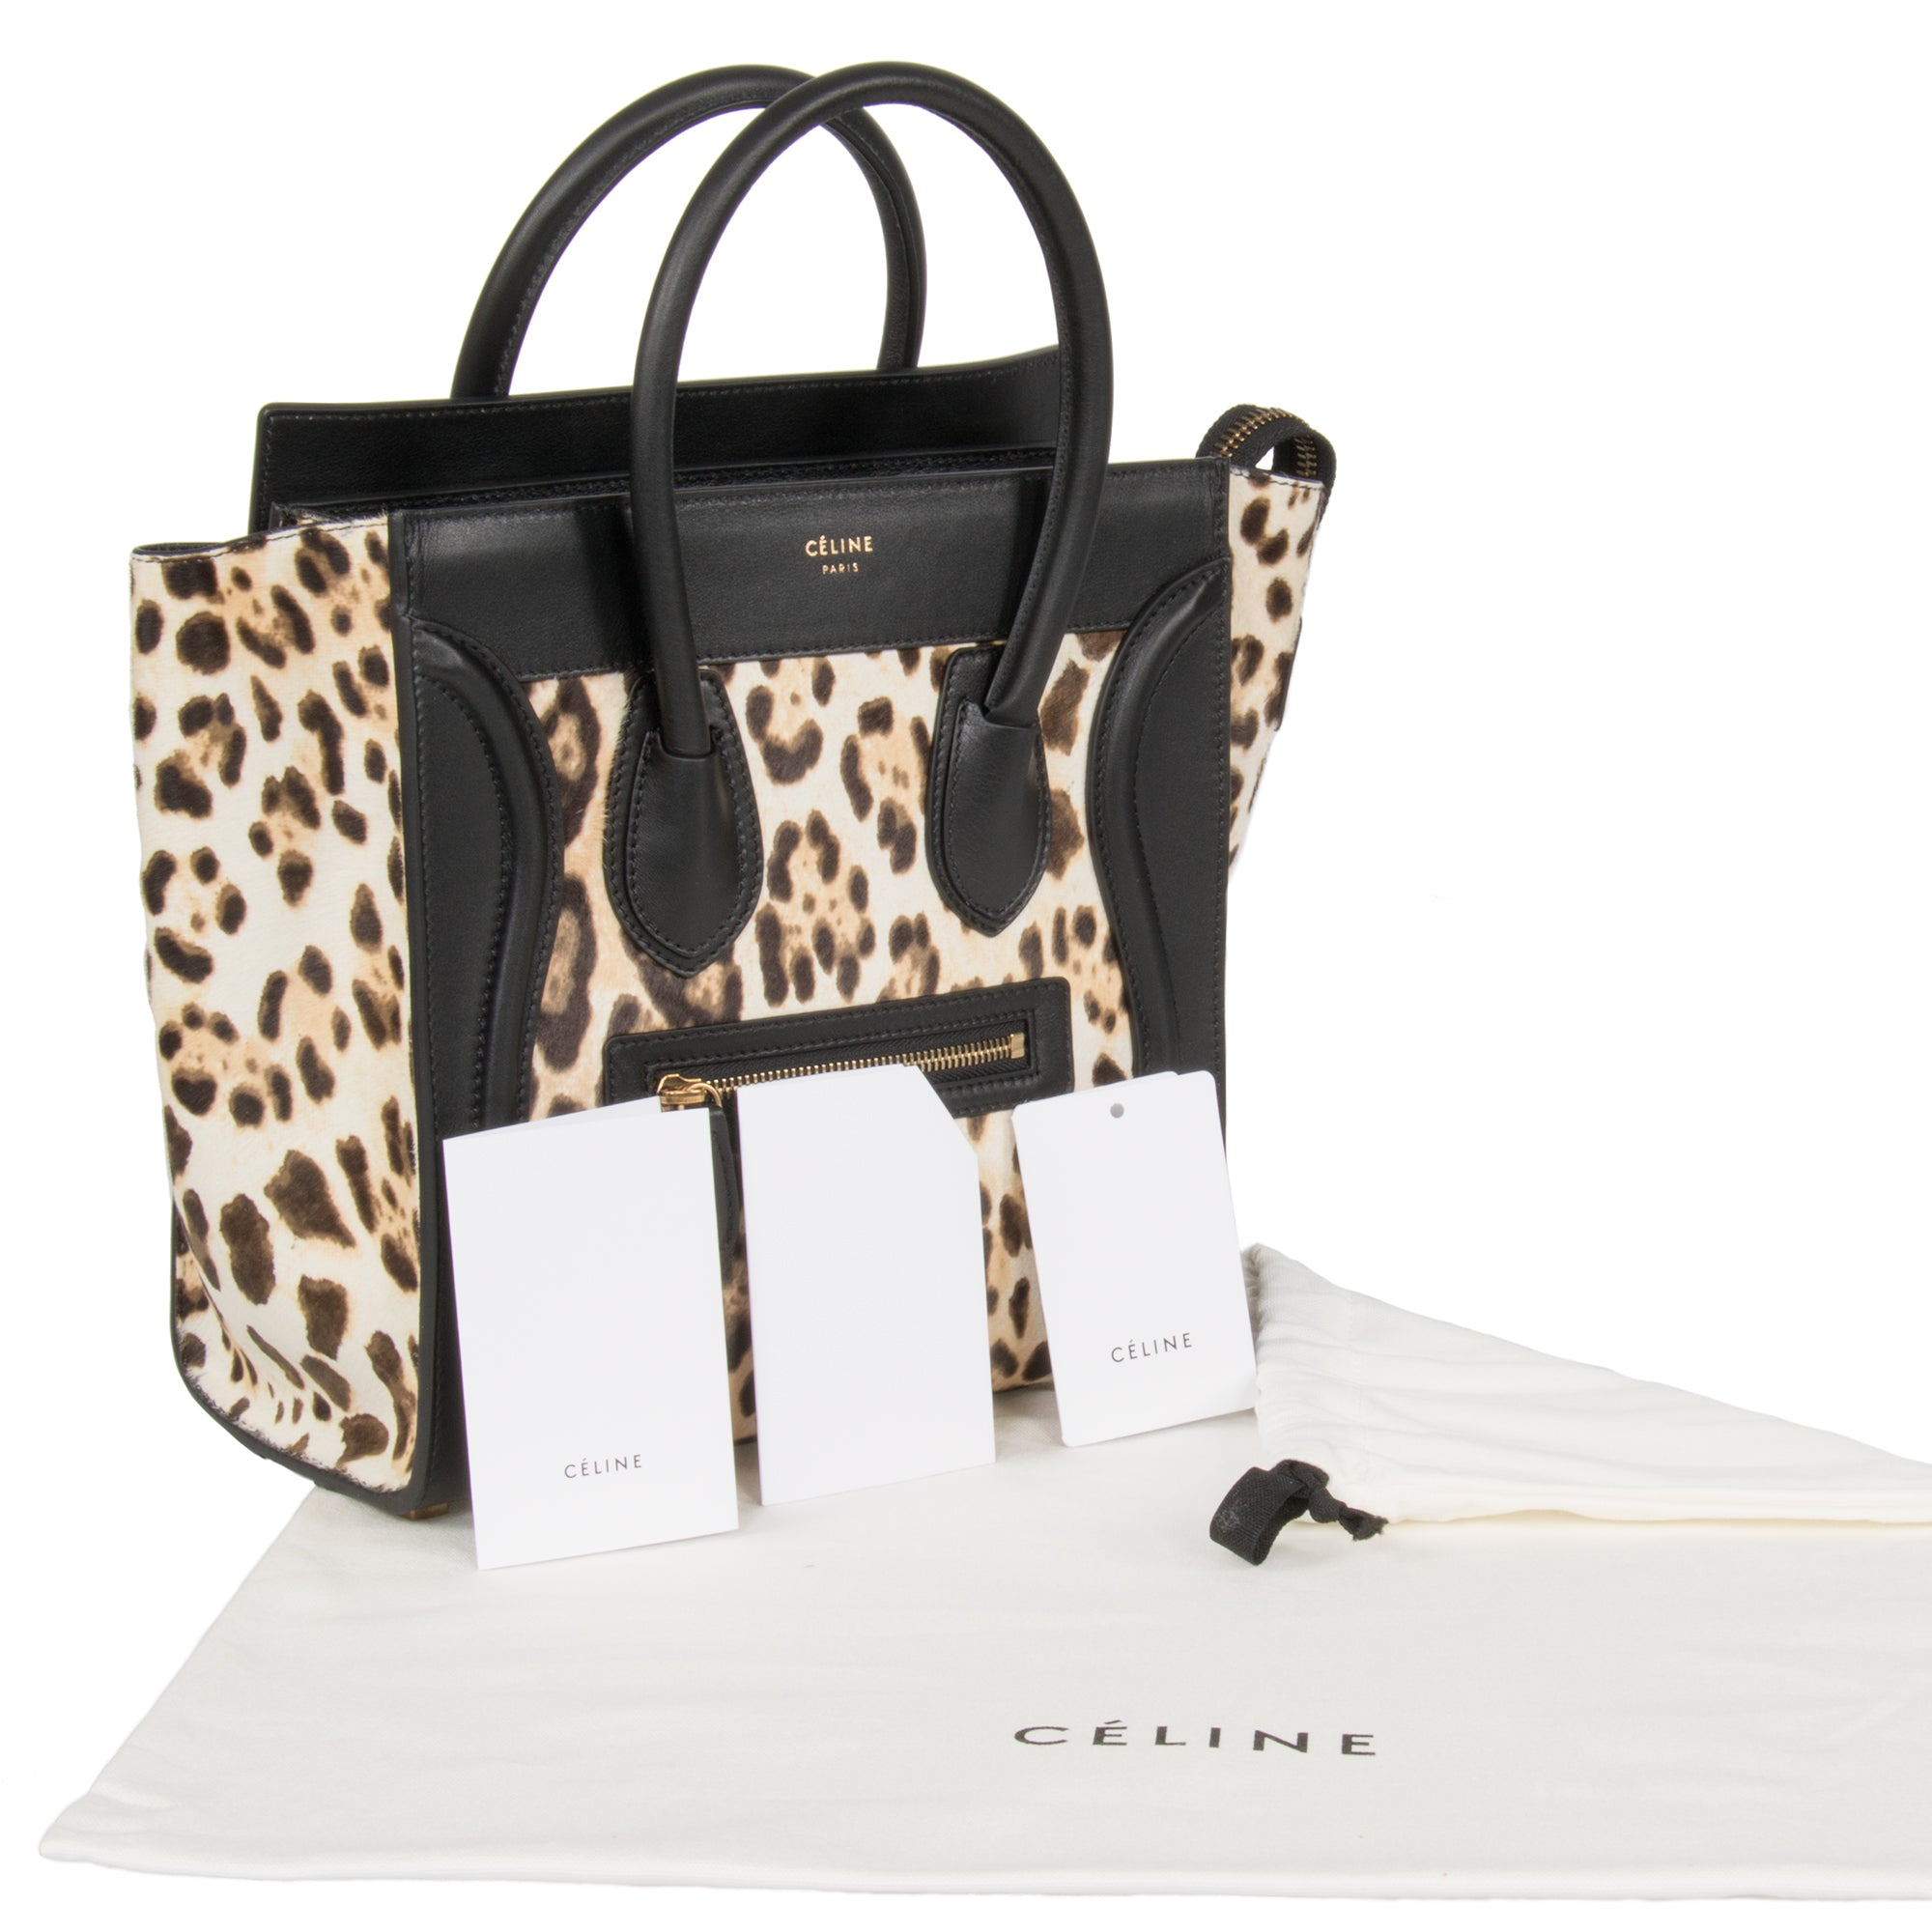 Céline Micro Luggage Tote Bag | Leopard and Black Print